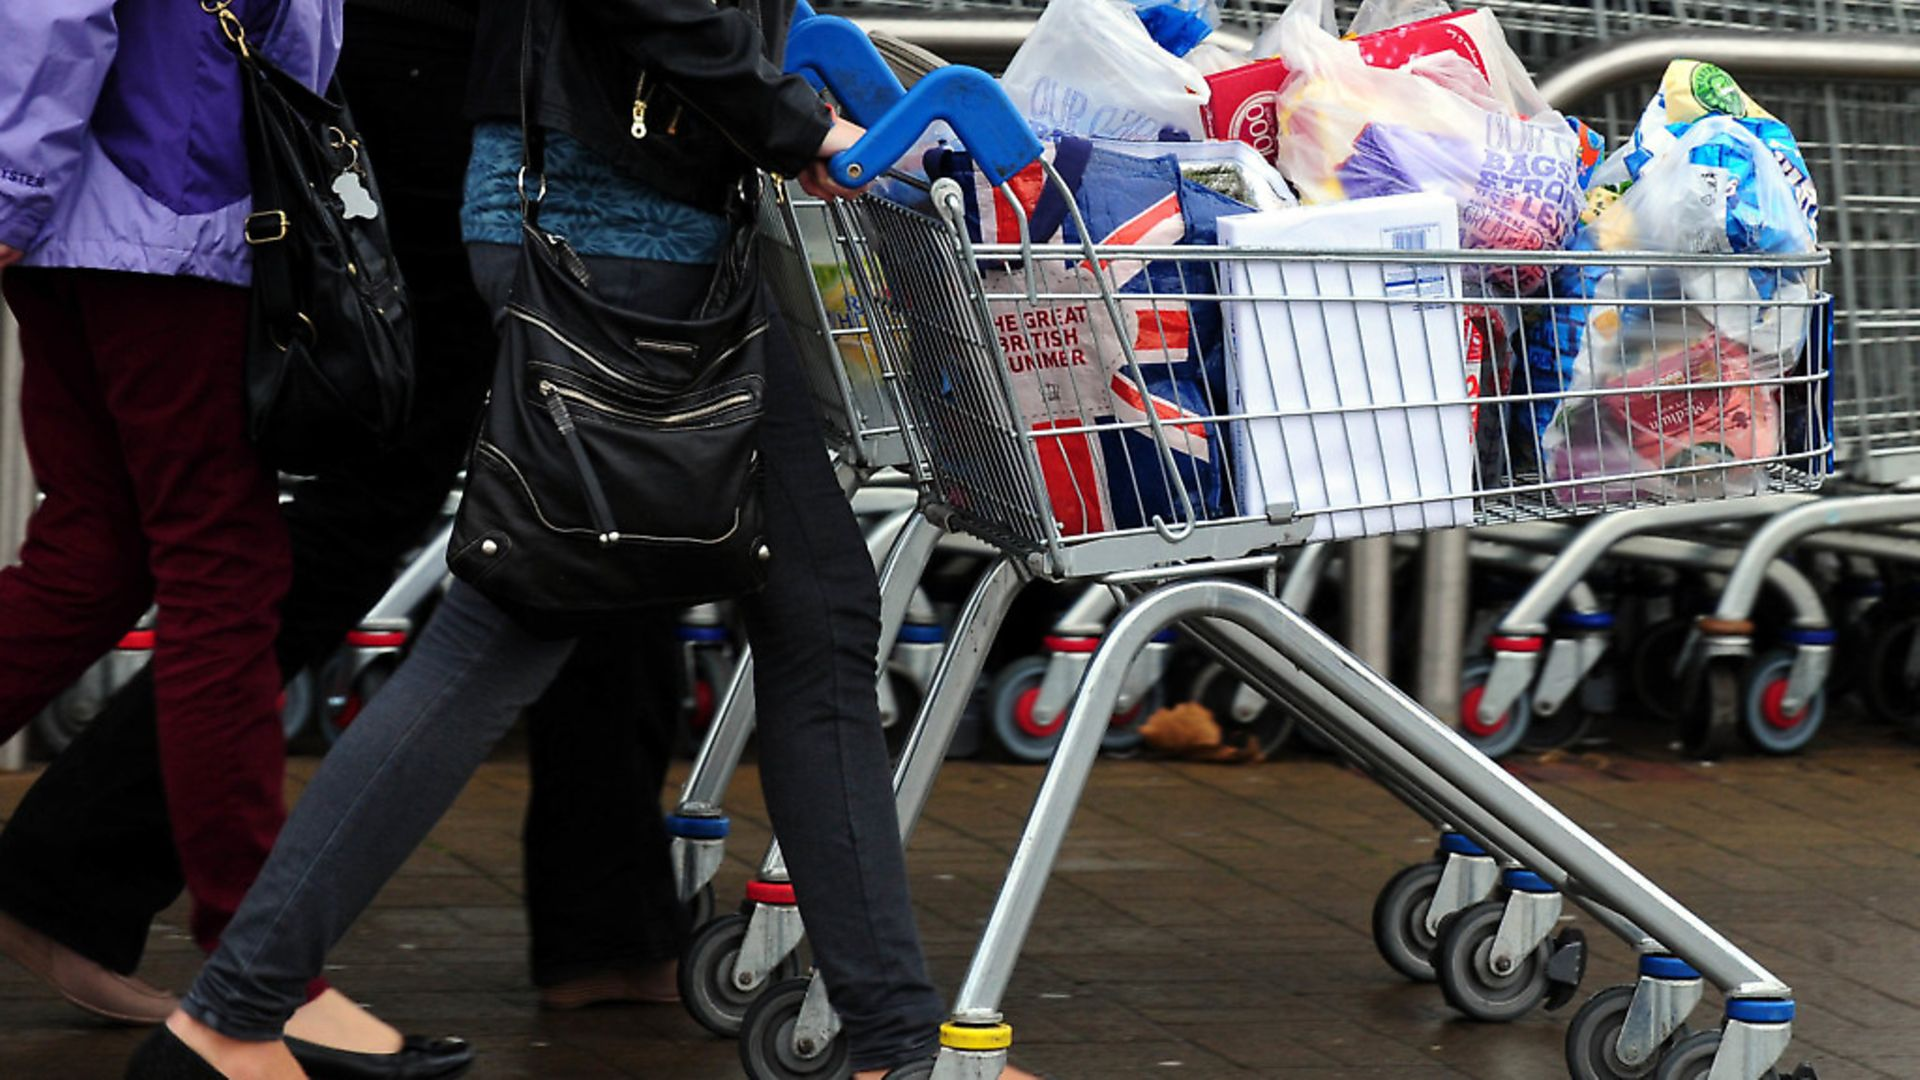 Customers leave a supermarket after food shopping. (Rui Vieira/PA) - Credit: PA Archive/PA Images